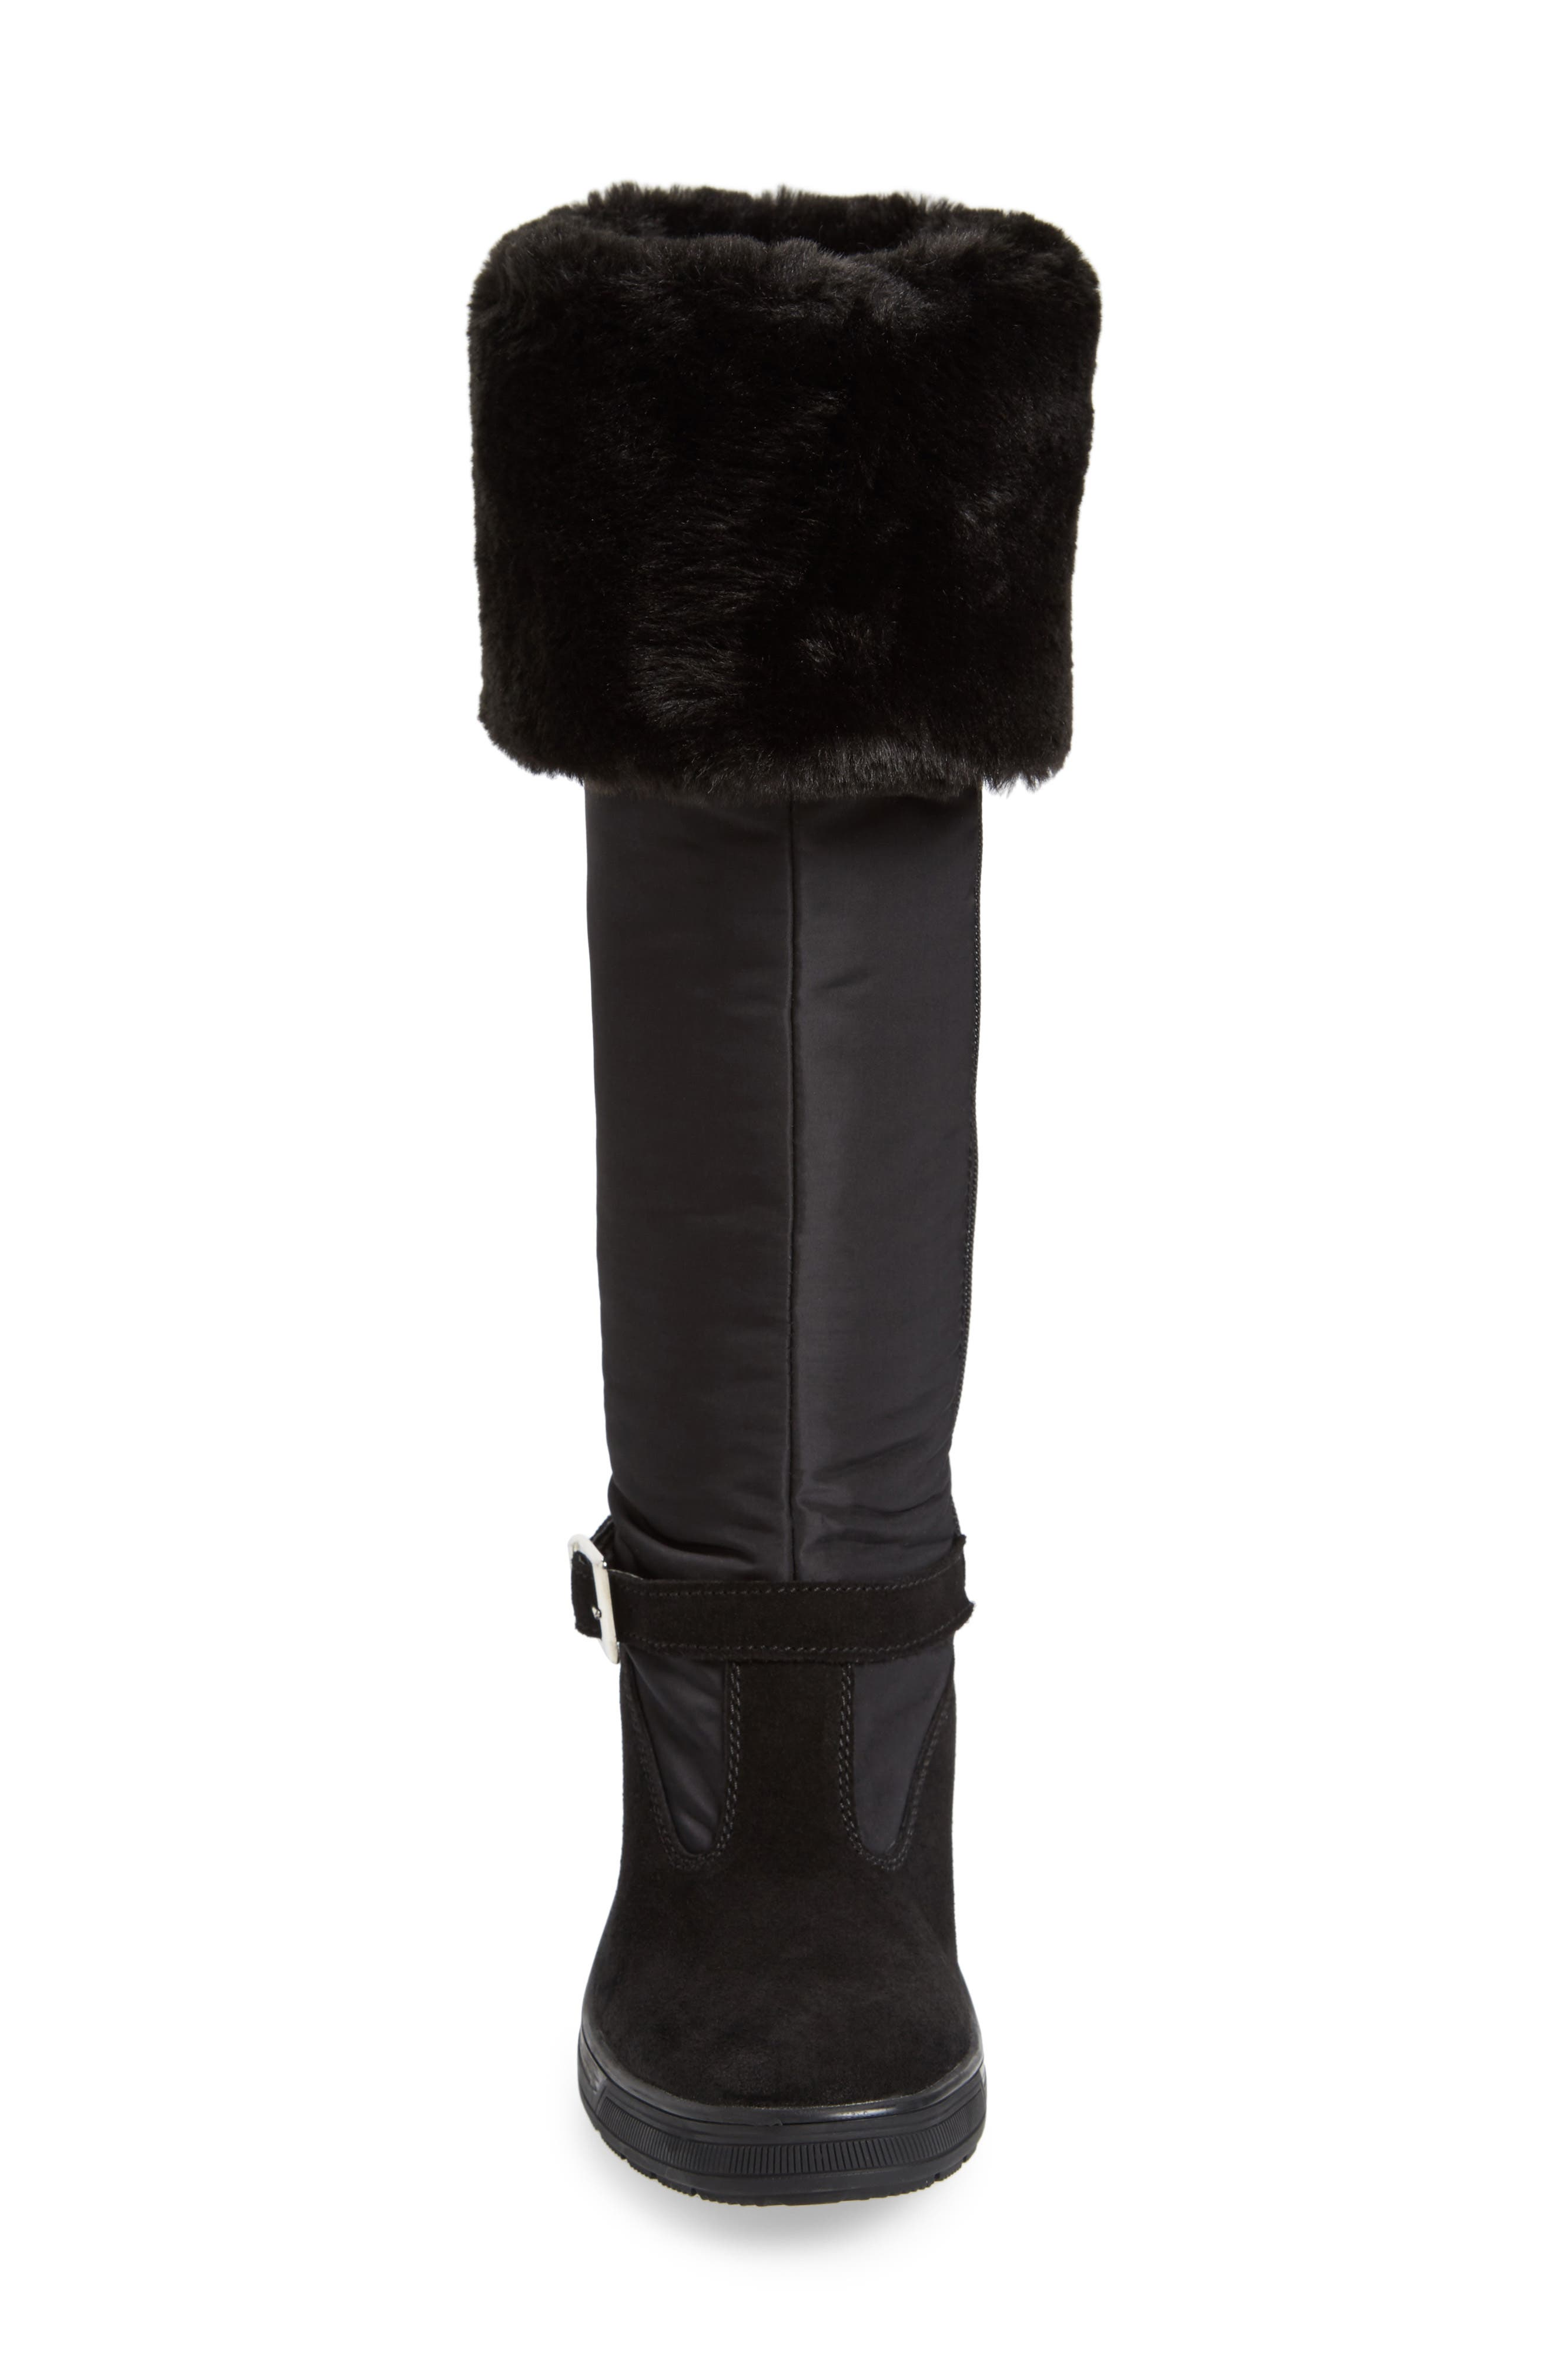 Norah Waterproof Boot with Faux Fur Cuff,                             Alternate thumbnail 4, color,